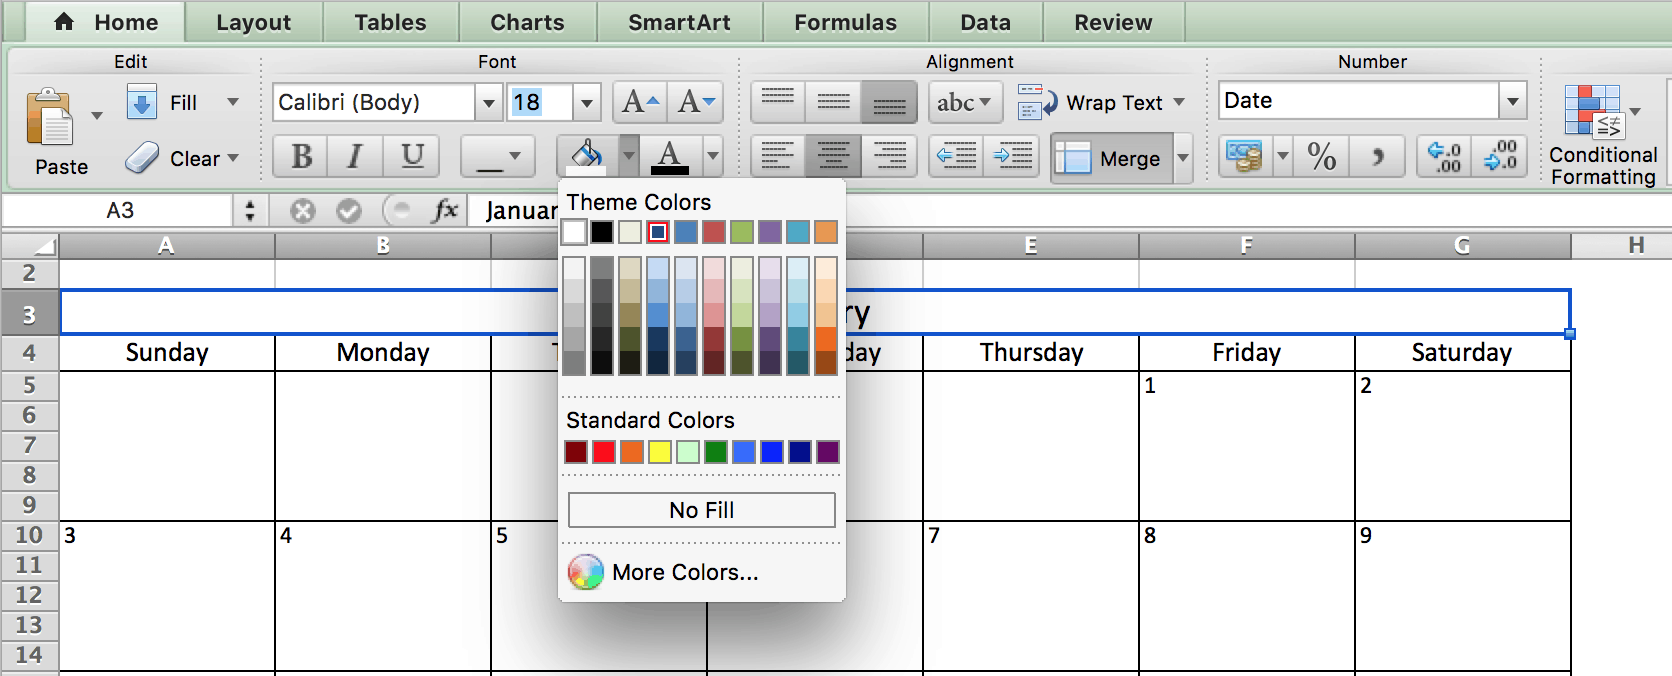 Ediblewildsus  Remarkable Make A  Calendar In Excel Includes Free Template With Lovely Choosing Colors  Calendar In Excel With Cool How To Calculate R Squared In Excel Also Cell Styles In Excel In Addition Excel Stdev And How To Fit To Page In Excel As Well As How To Print Mailing Labels From Excel Additionally Remove Blank Rows In Excel  From Smartsheetcom With Ediblewildsus  Lovely Make A  Calendar In Excel Includes Free Template With Cool Choosing Colors  Calendar In Excel And Remarkable How To Calculate R Squared In Excel Also Cell Styles In Excel In Addition Excel Stdev From Smartsheetcom